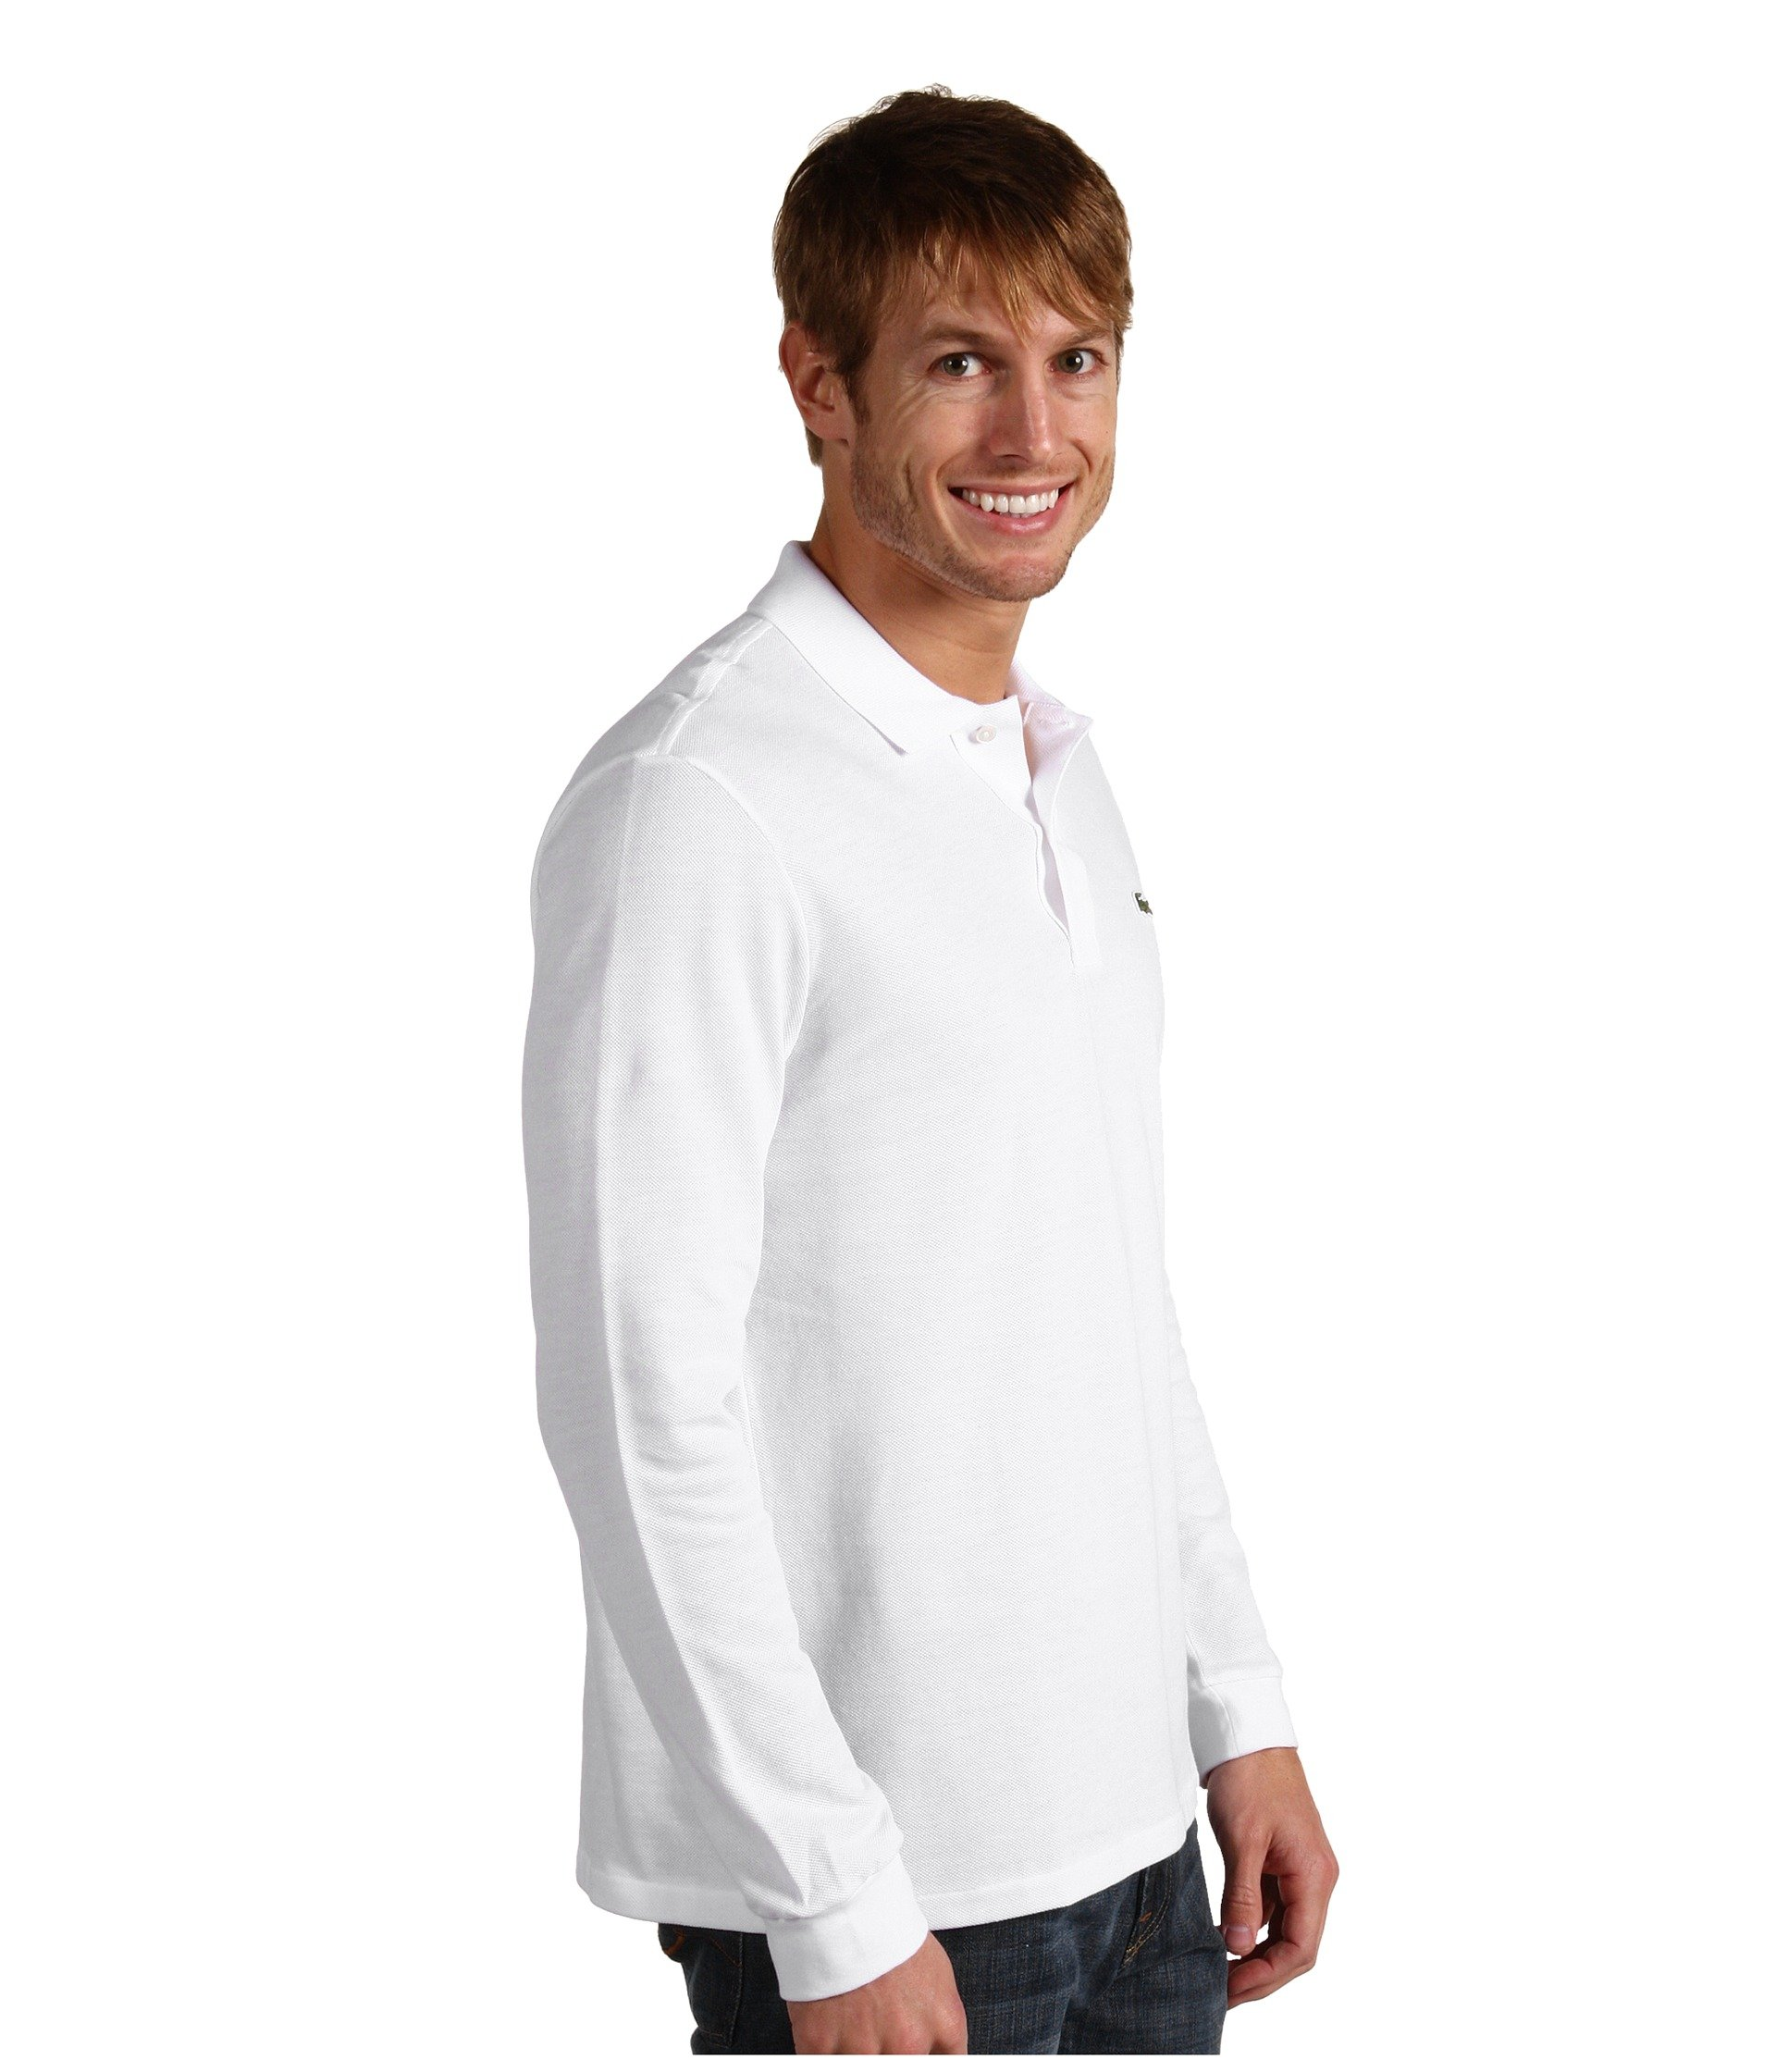 Sleeve Lacoste Long Polo Shirt Classic Pique White 4F07xFq5